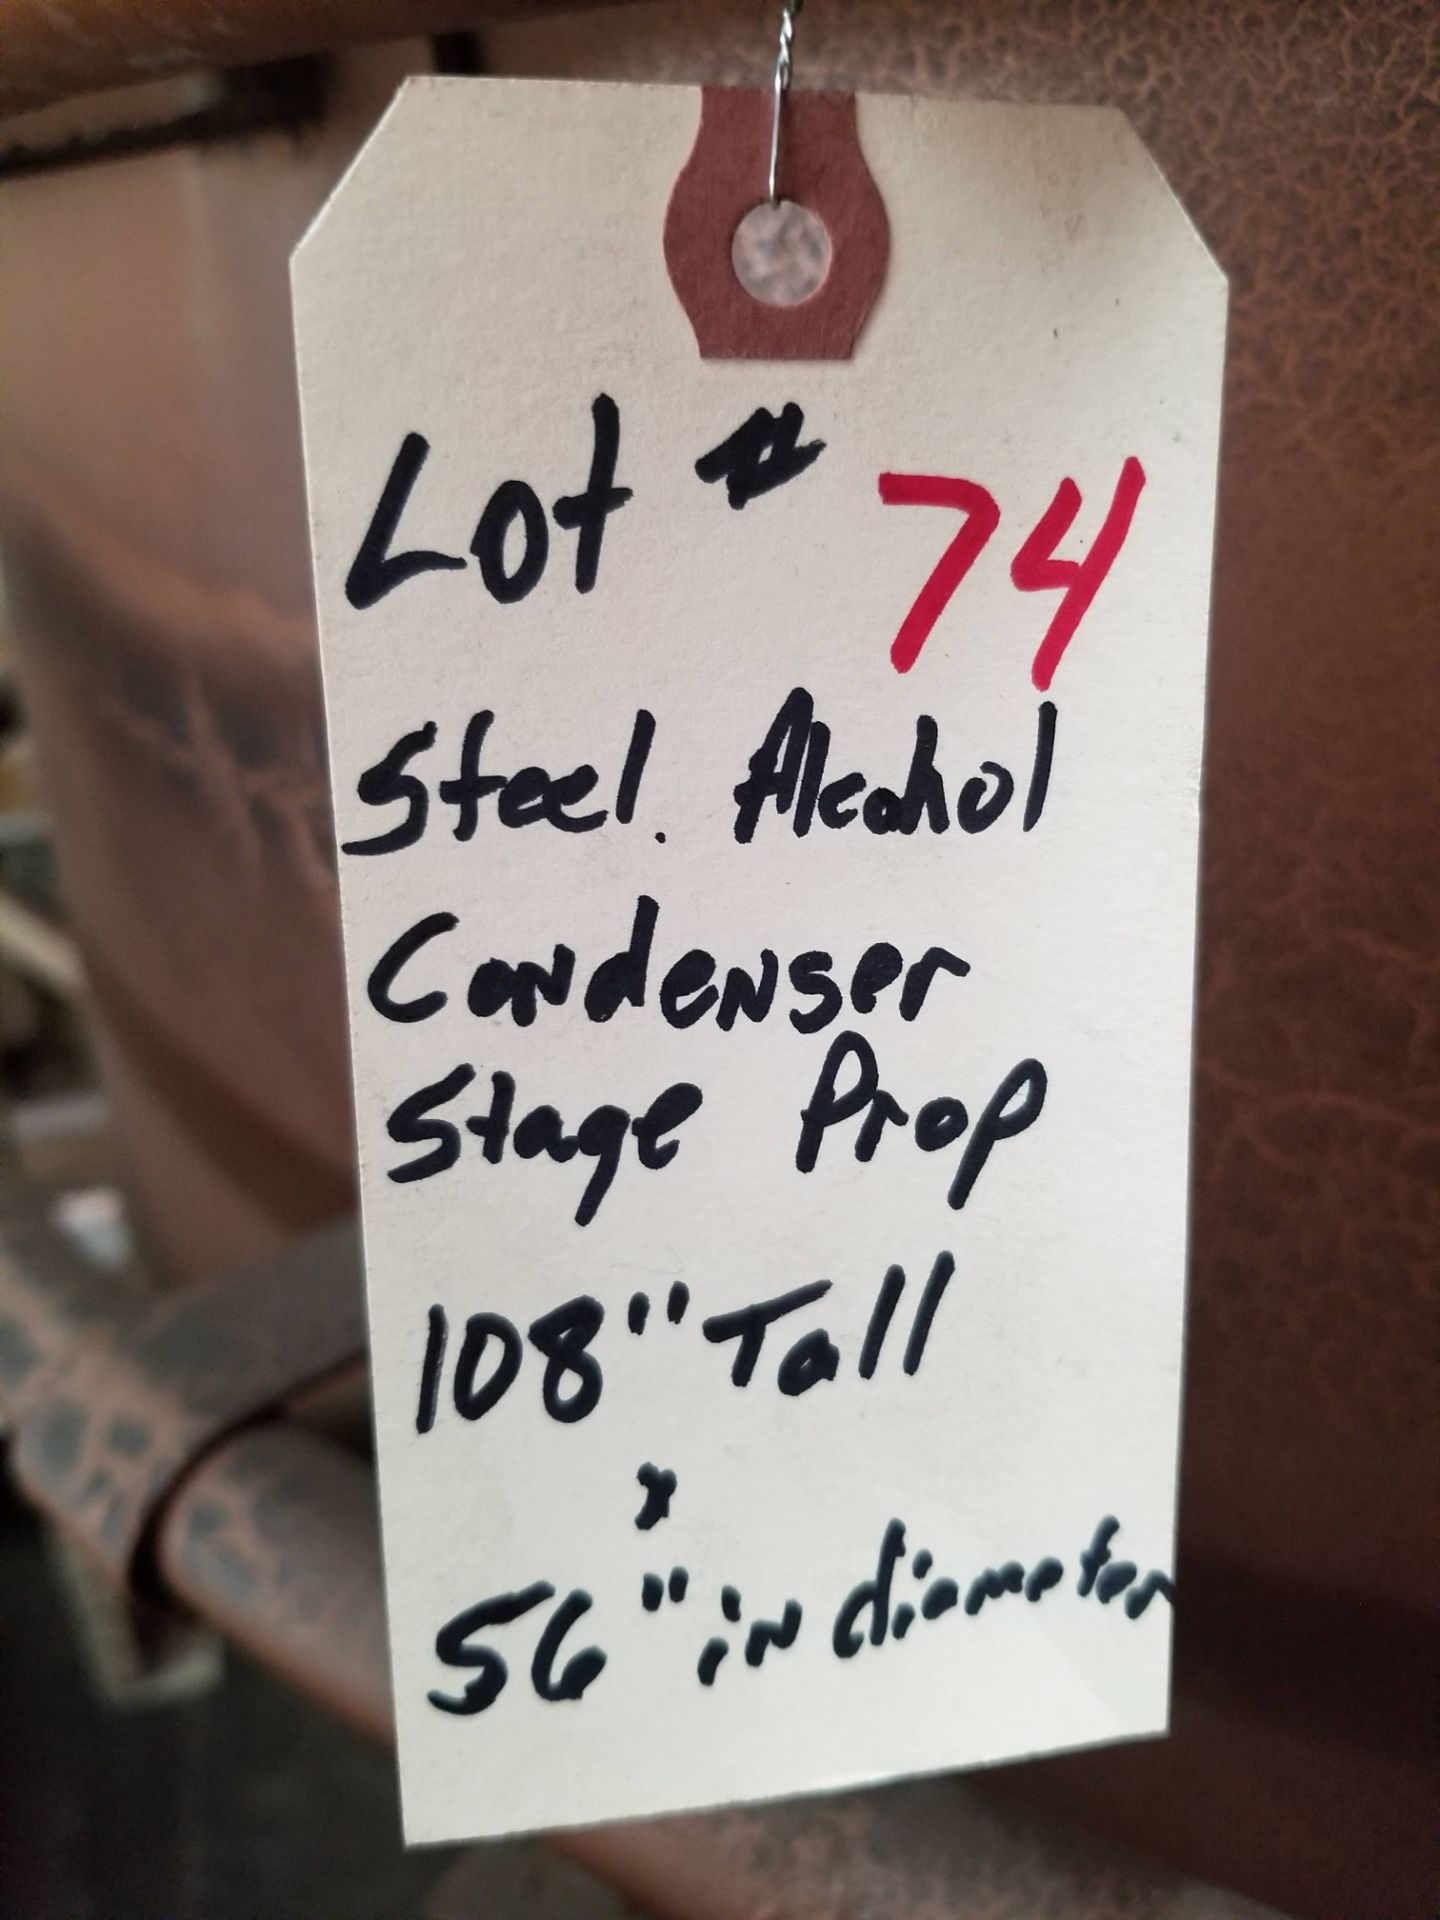 "Lot 74 - Steel Alcohol Condenser Stage Prop, 108"" tall x 56"" in diameter."